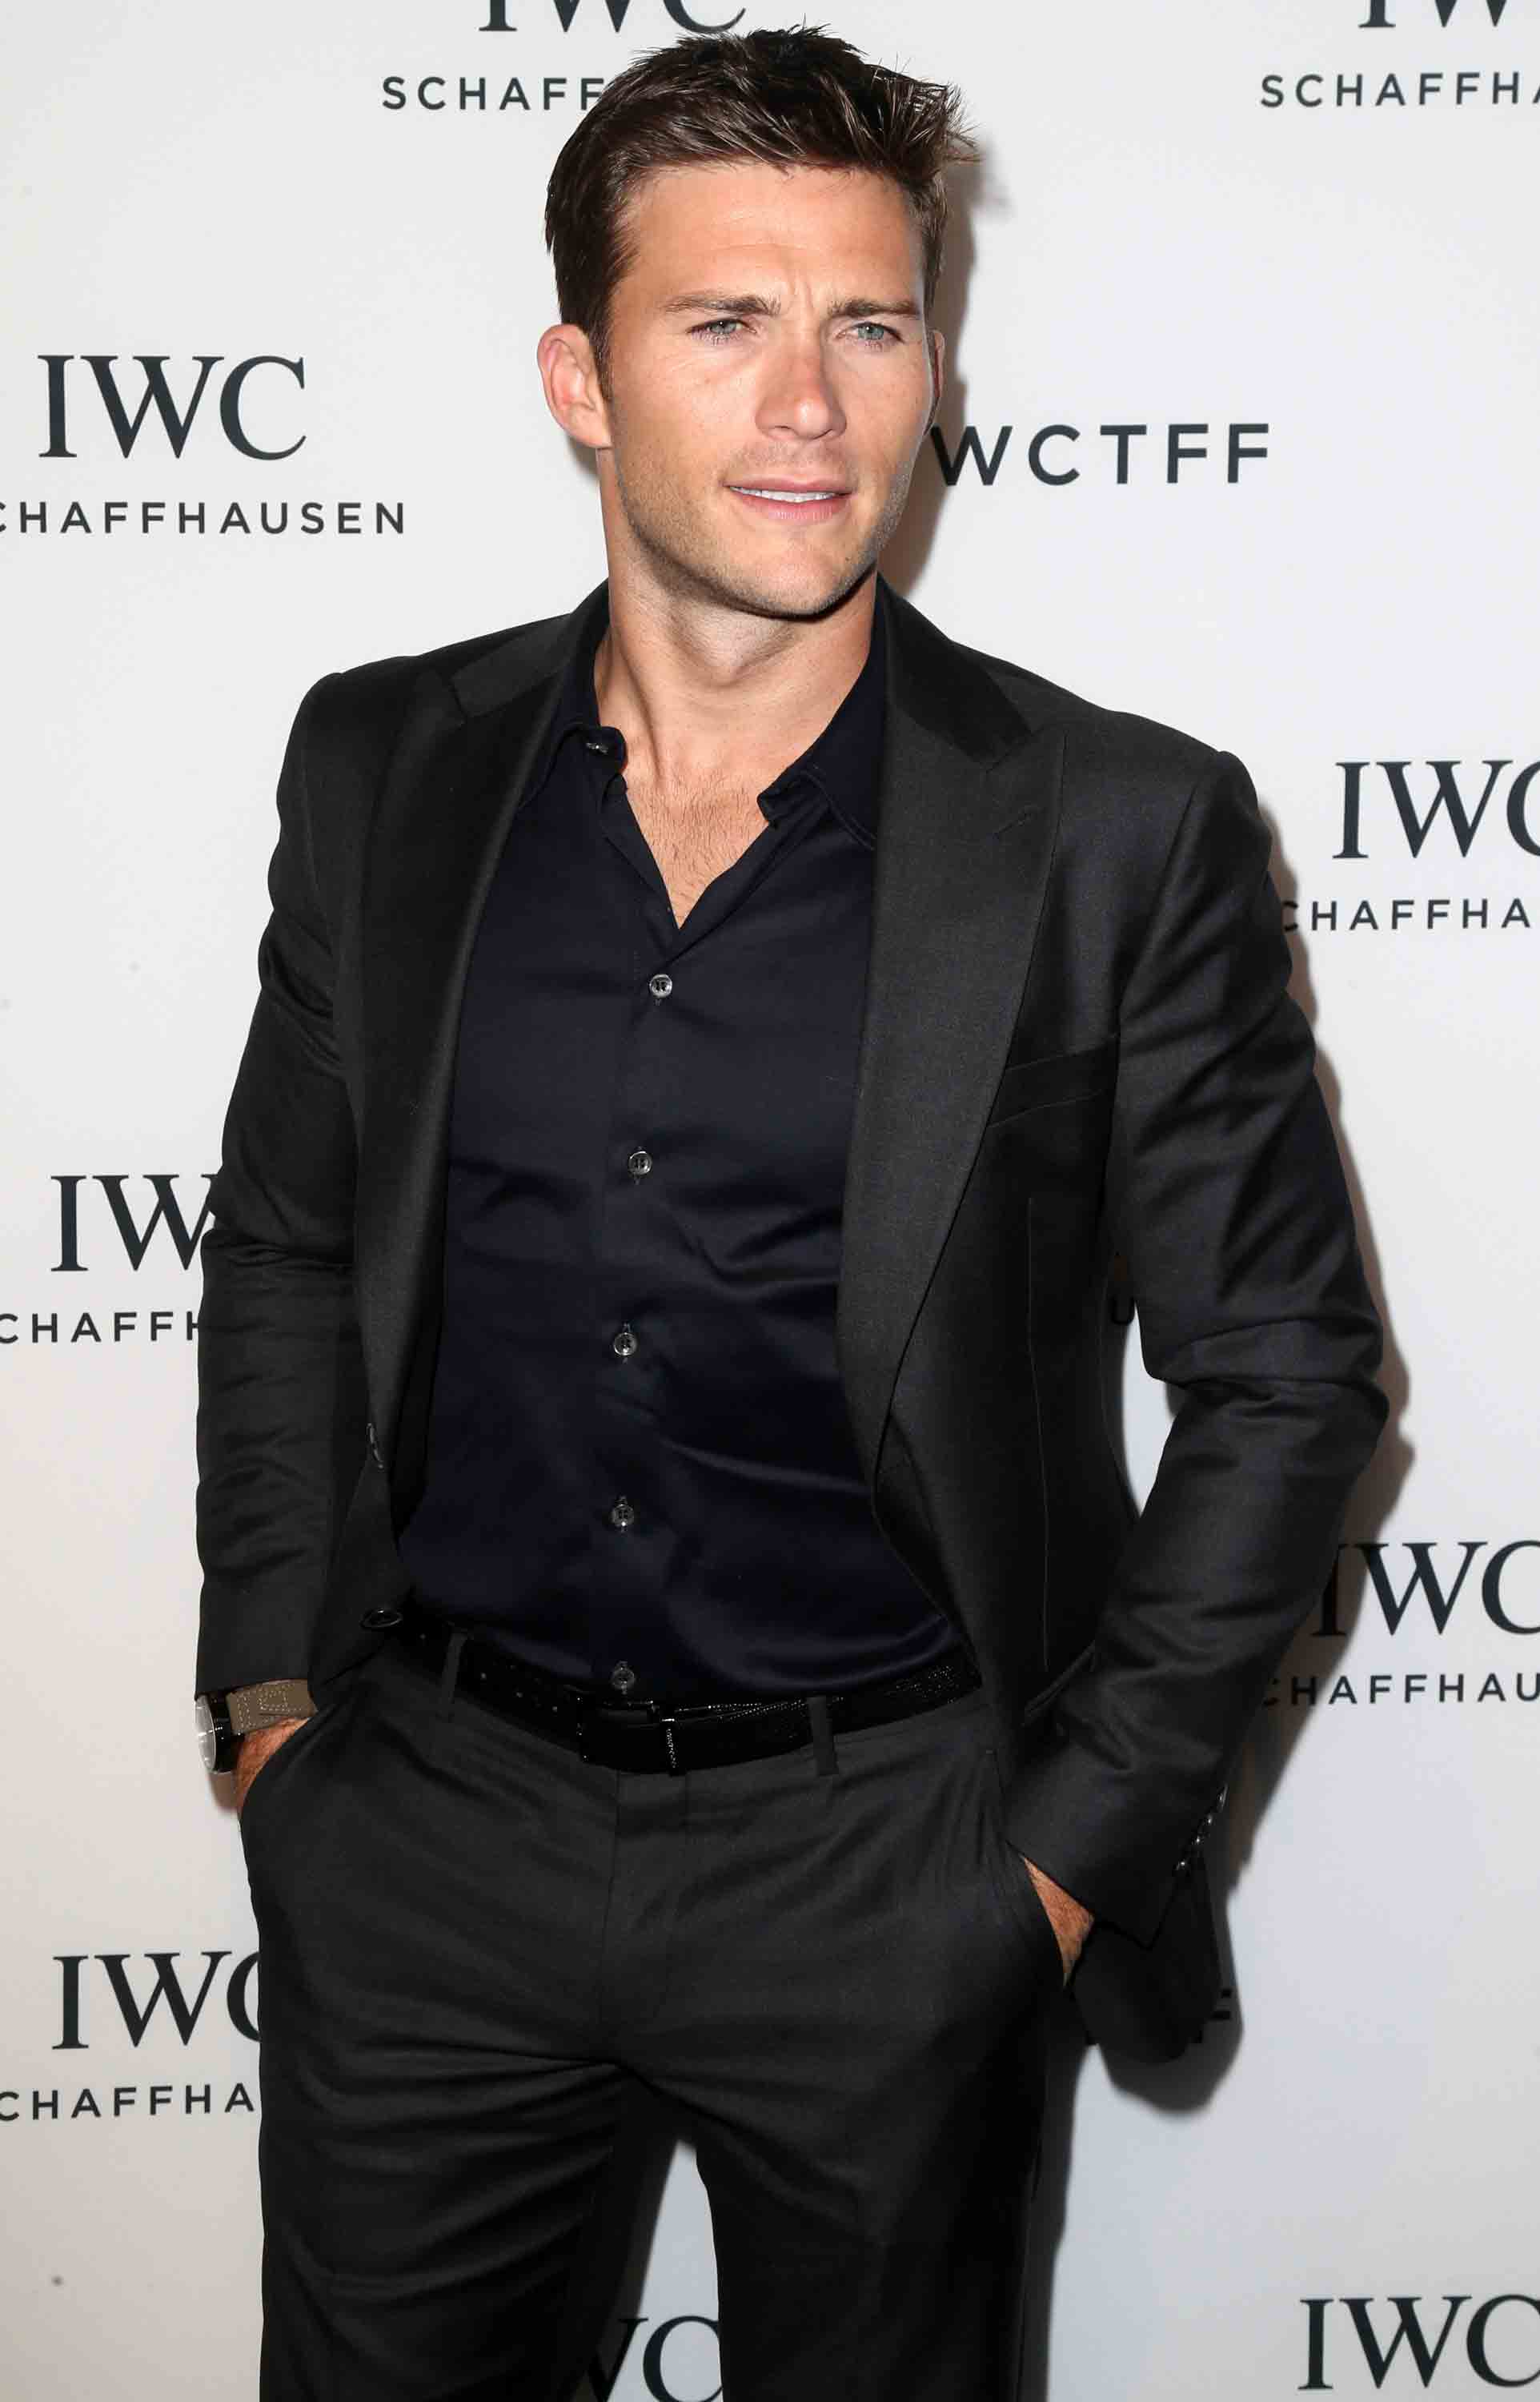 eastwood women It didn't take long for the longest ride star scott eastwood to make women everywhere swoon over his piercing baby.